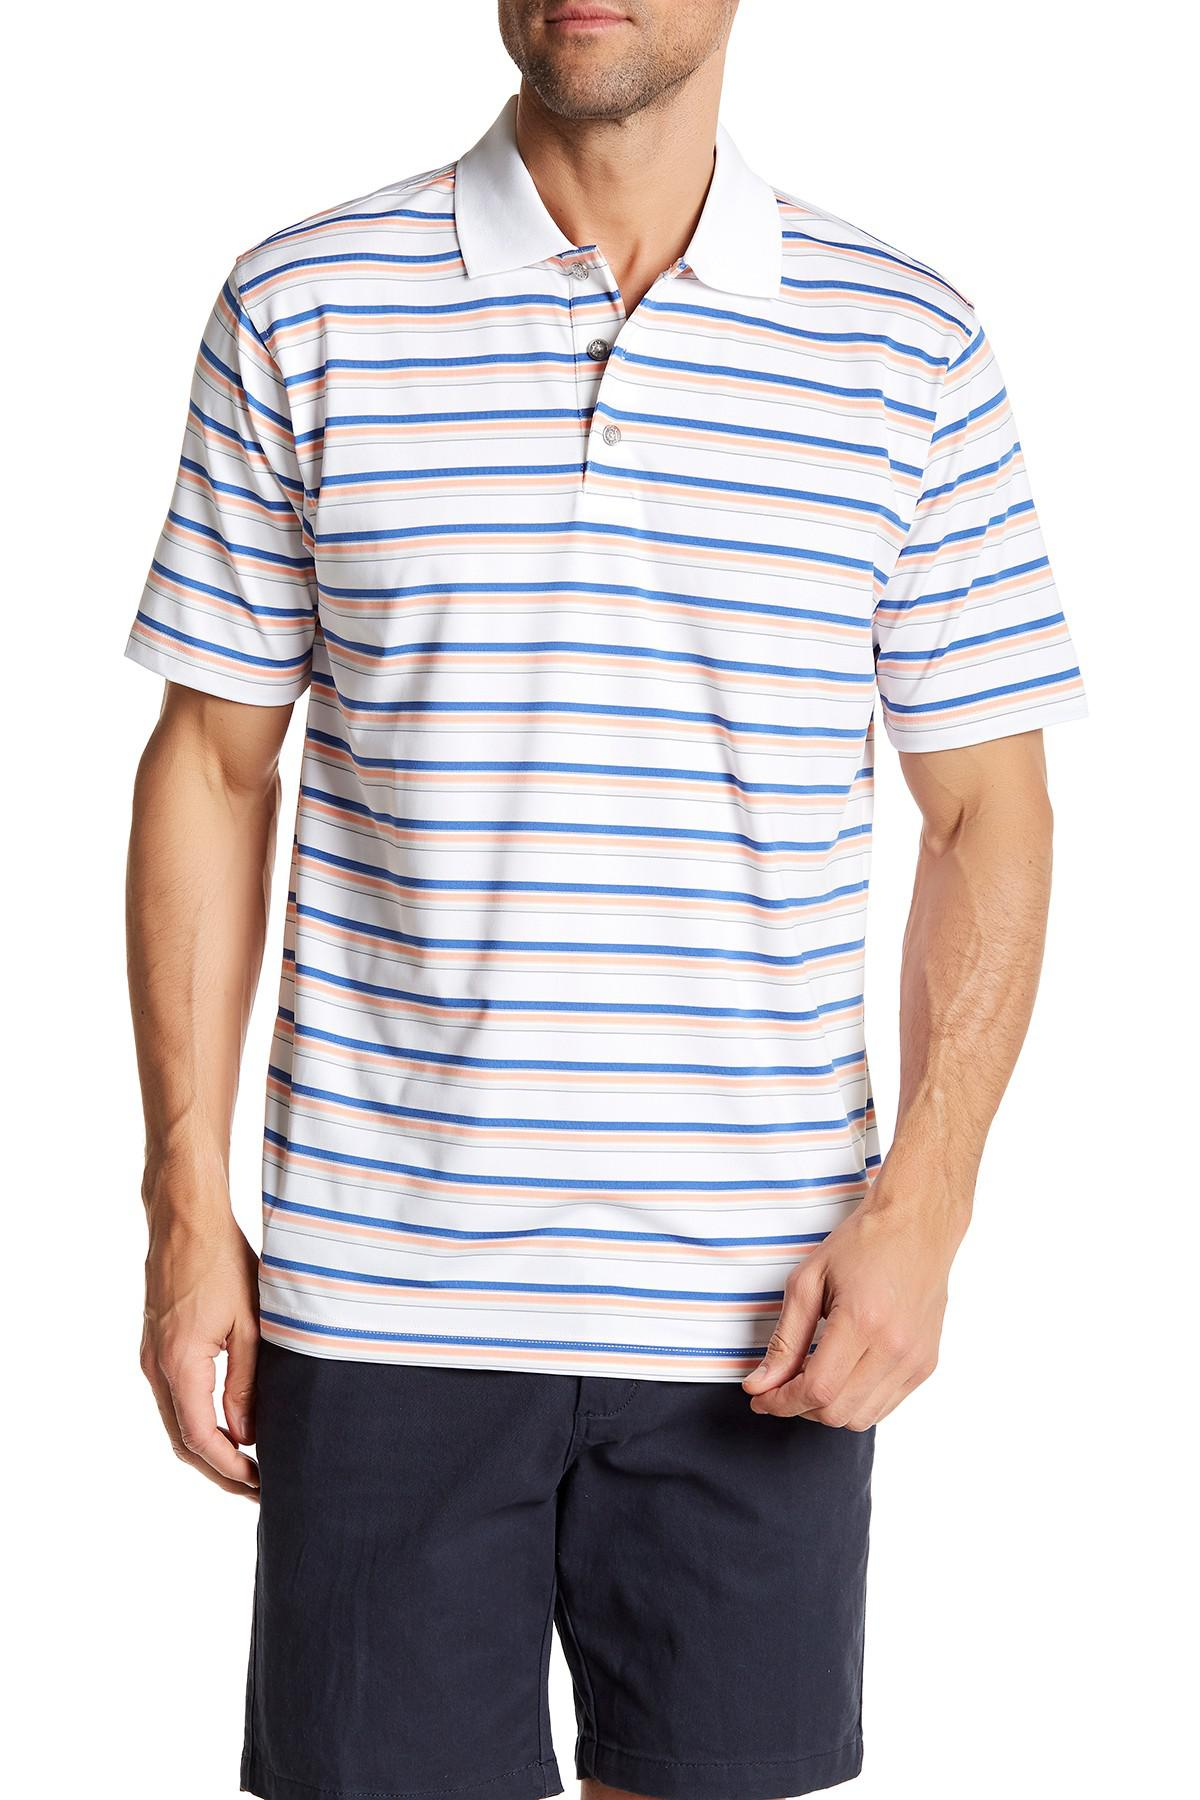 Pebble Beach Mens Embossed Stripe Polo Shirt